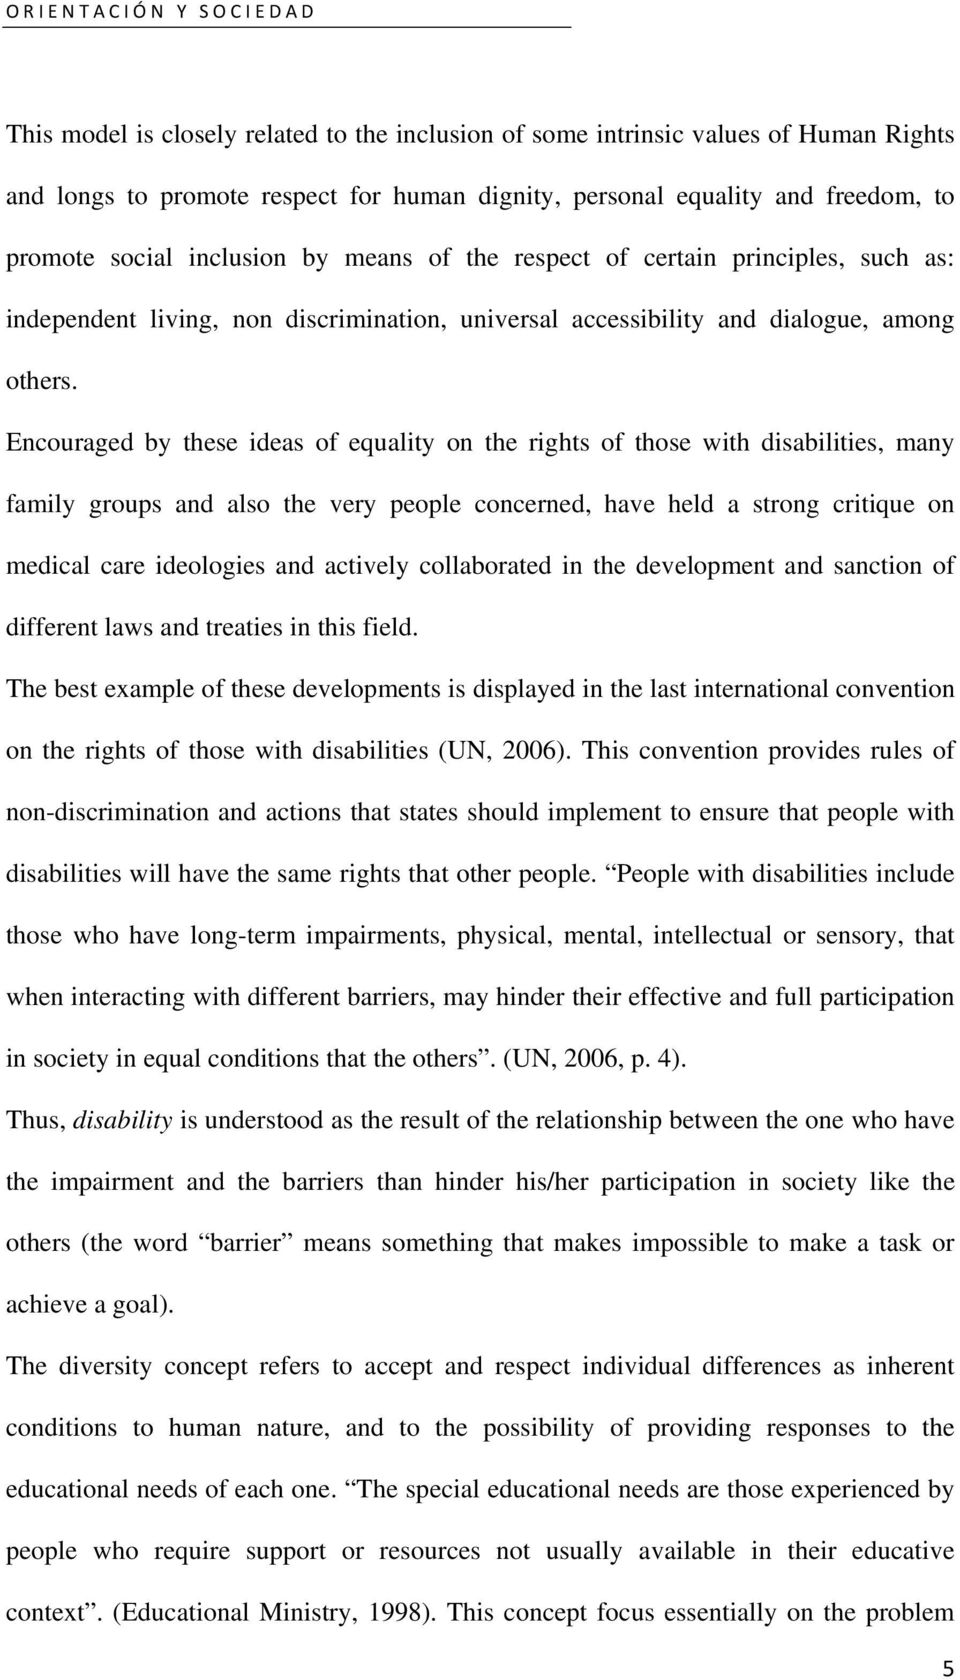 Encouraged by these ideas of equality on the rights of those with disabilities, many family groups and also the very people concerned, have held a strong critique on medical care ideologies and